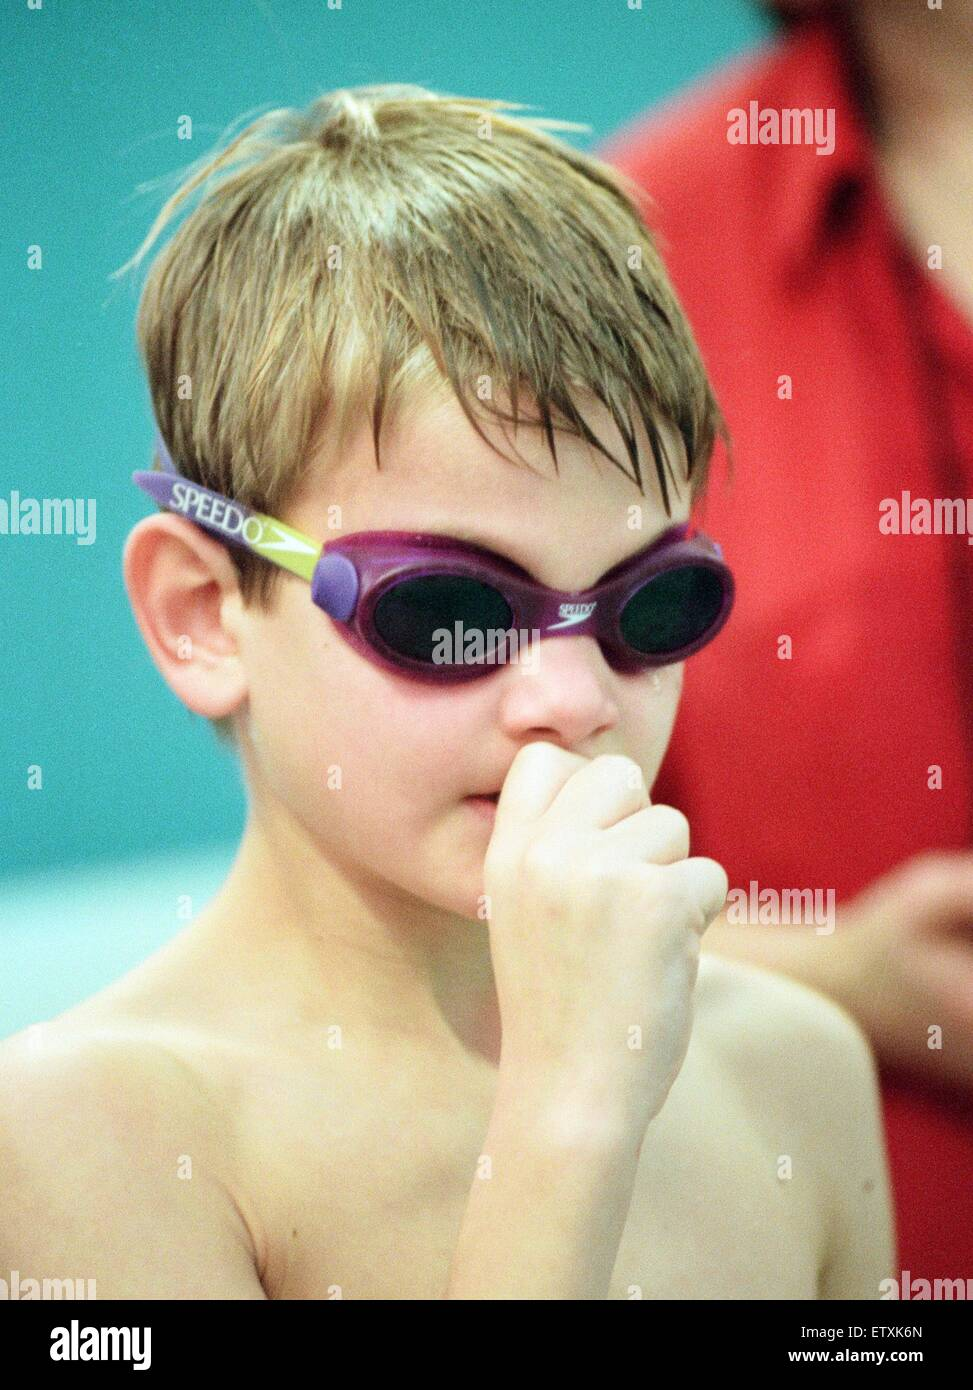 Action at the Guisborough Swimming Club Gala - the nervous wait for your race. 16th November 1997. - Stock Image